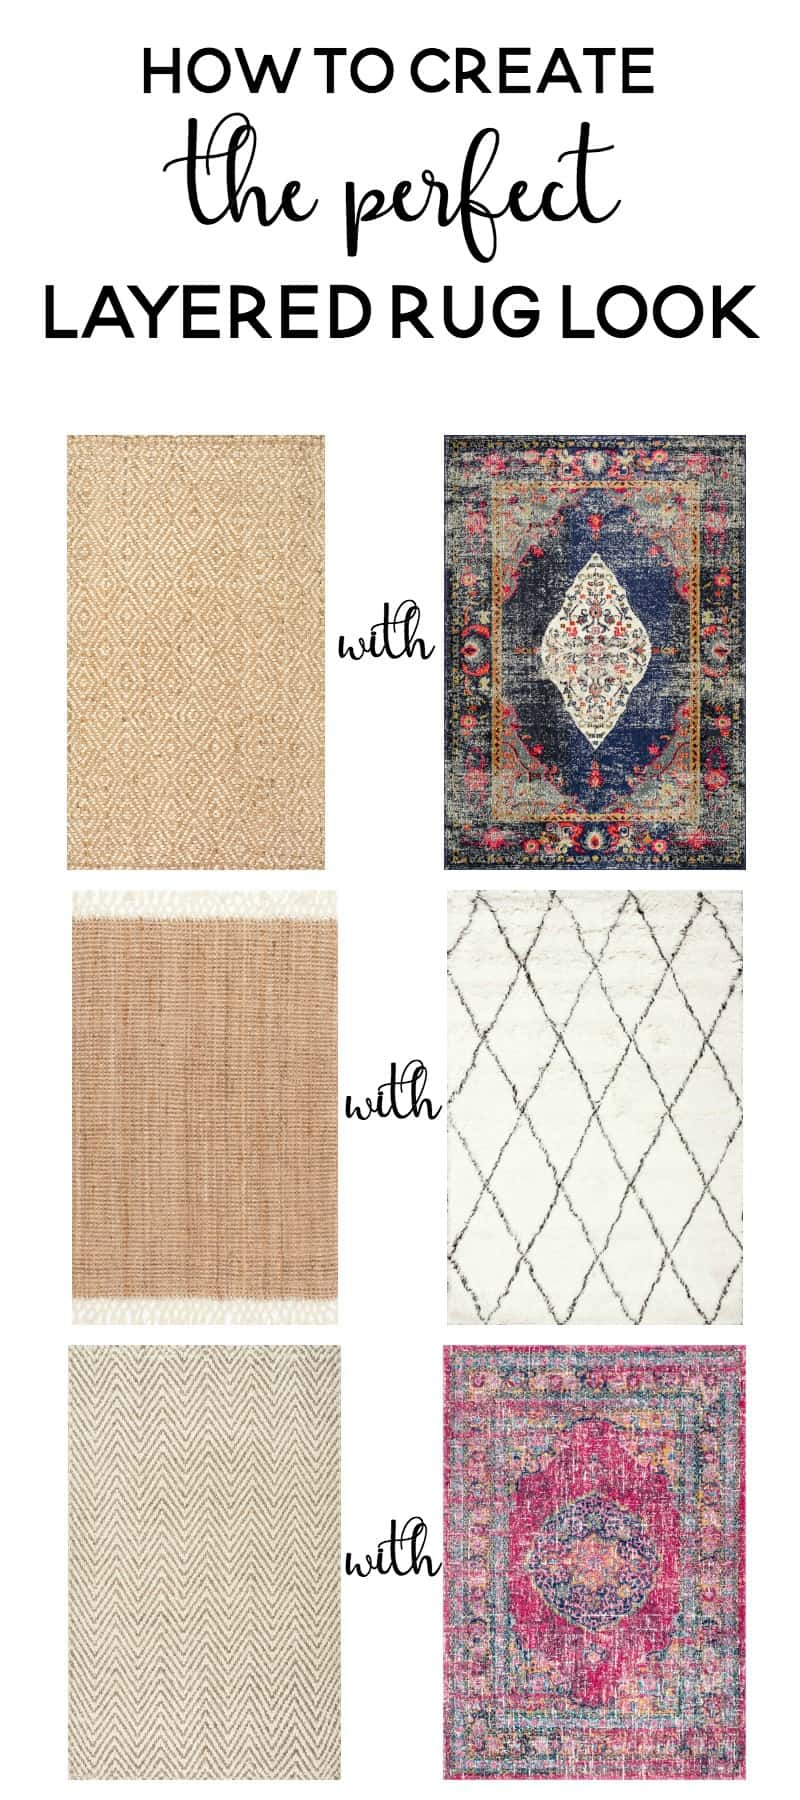 How to Create the Perfect Layered Rug Look. Tons of rugs and inspiration for which rugs to layer and how to pair rugs together. Goes with any design style and adds texture and style to any room